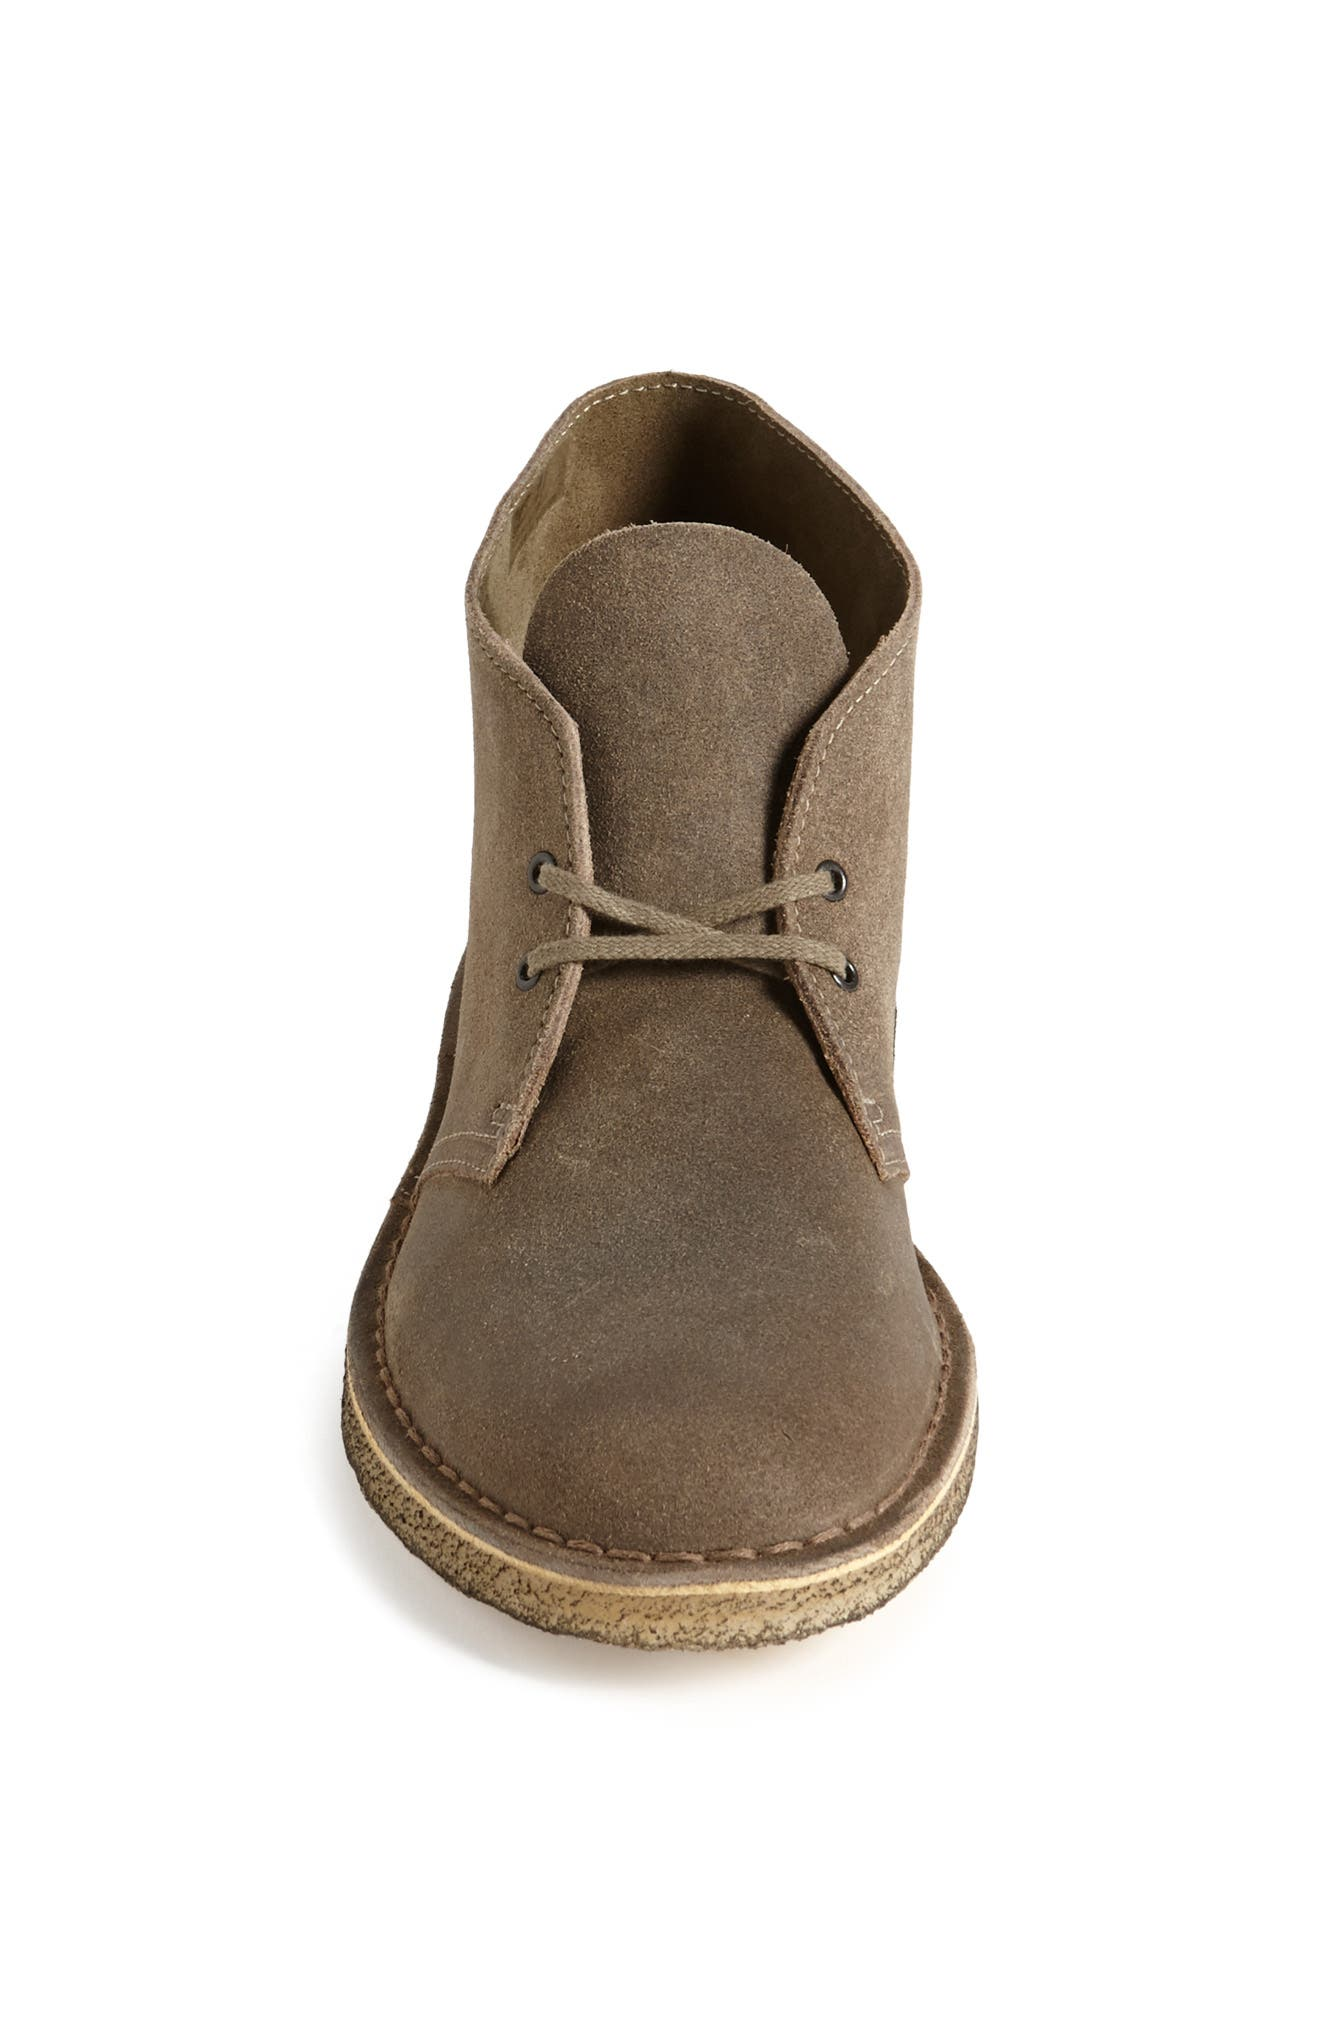 'Desert' Boot,                             Alternate thumbnail 4, color,                             TAUPE DISTRESSED SUEDE